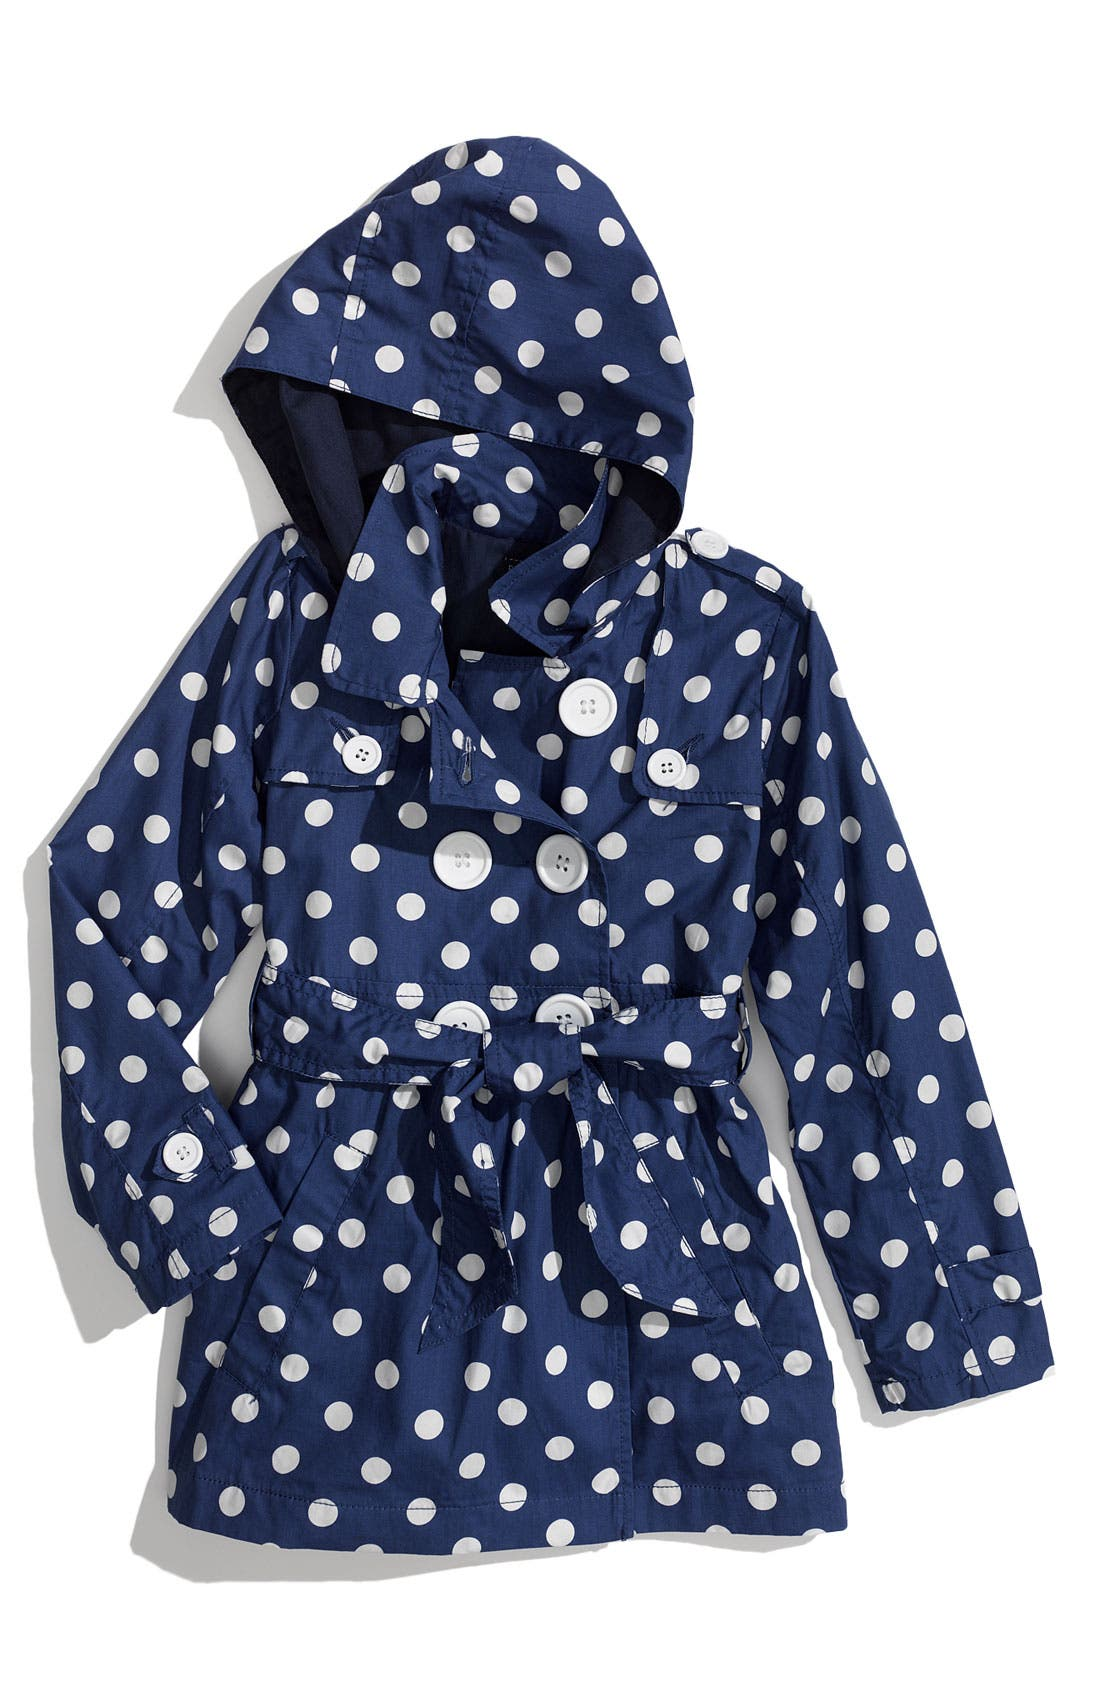 Main Image - Pumpkin Patch 'Spotty' Print Trench Coat (Little Girls)